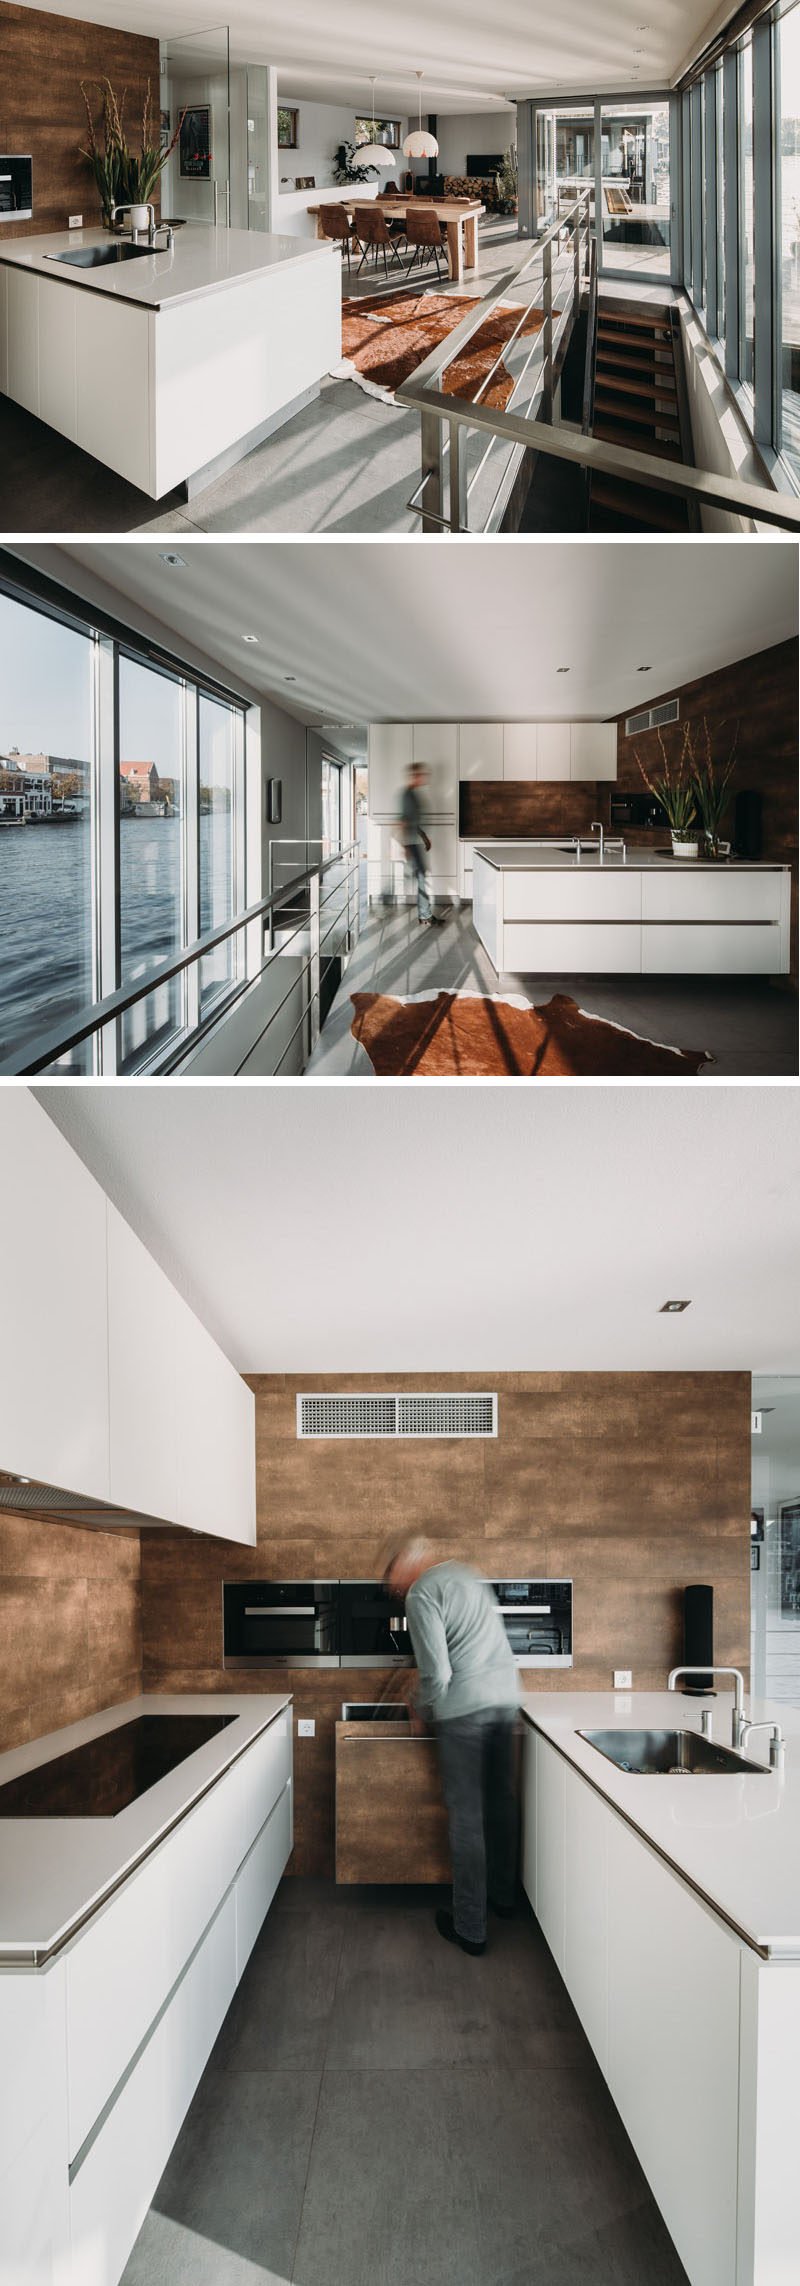 This modern houseboat has a kitchen that's minimalist in its design with hardware free white cabinets and matching countertops. #ModernKitchen #WhiteKitchen